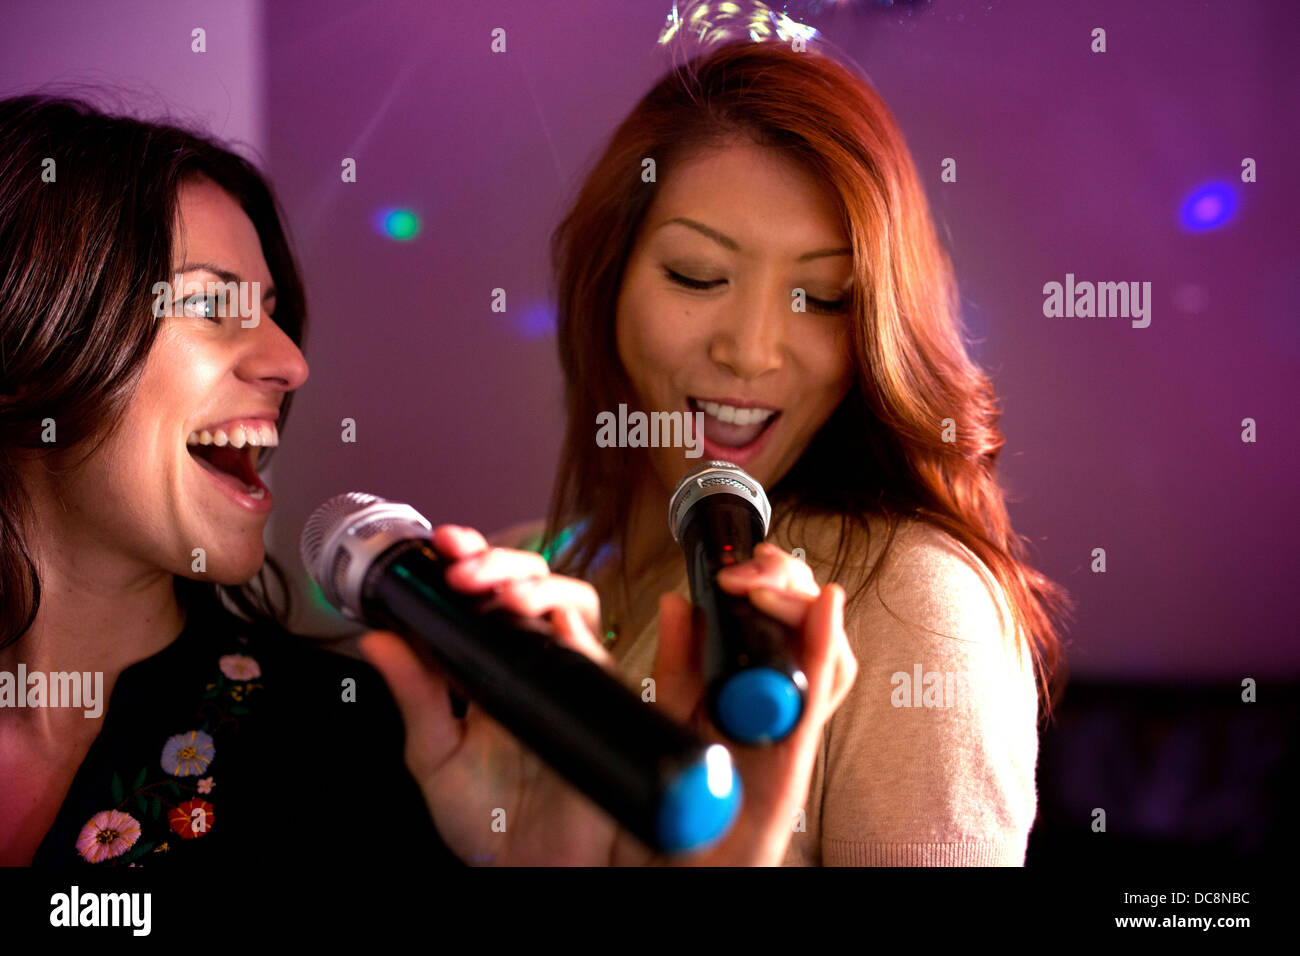 Two women singing karaoke. Stock Photo